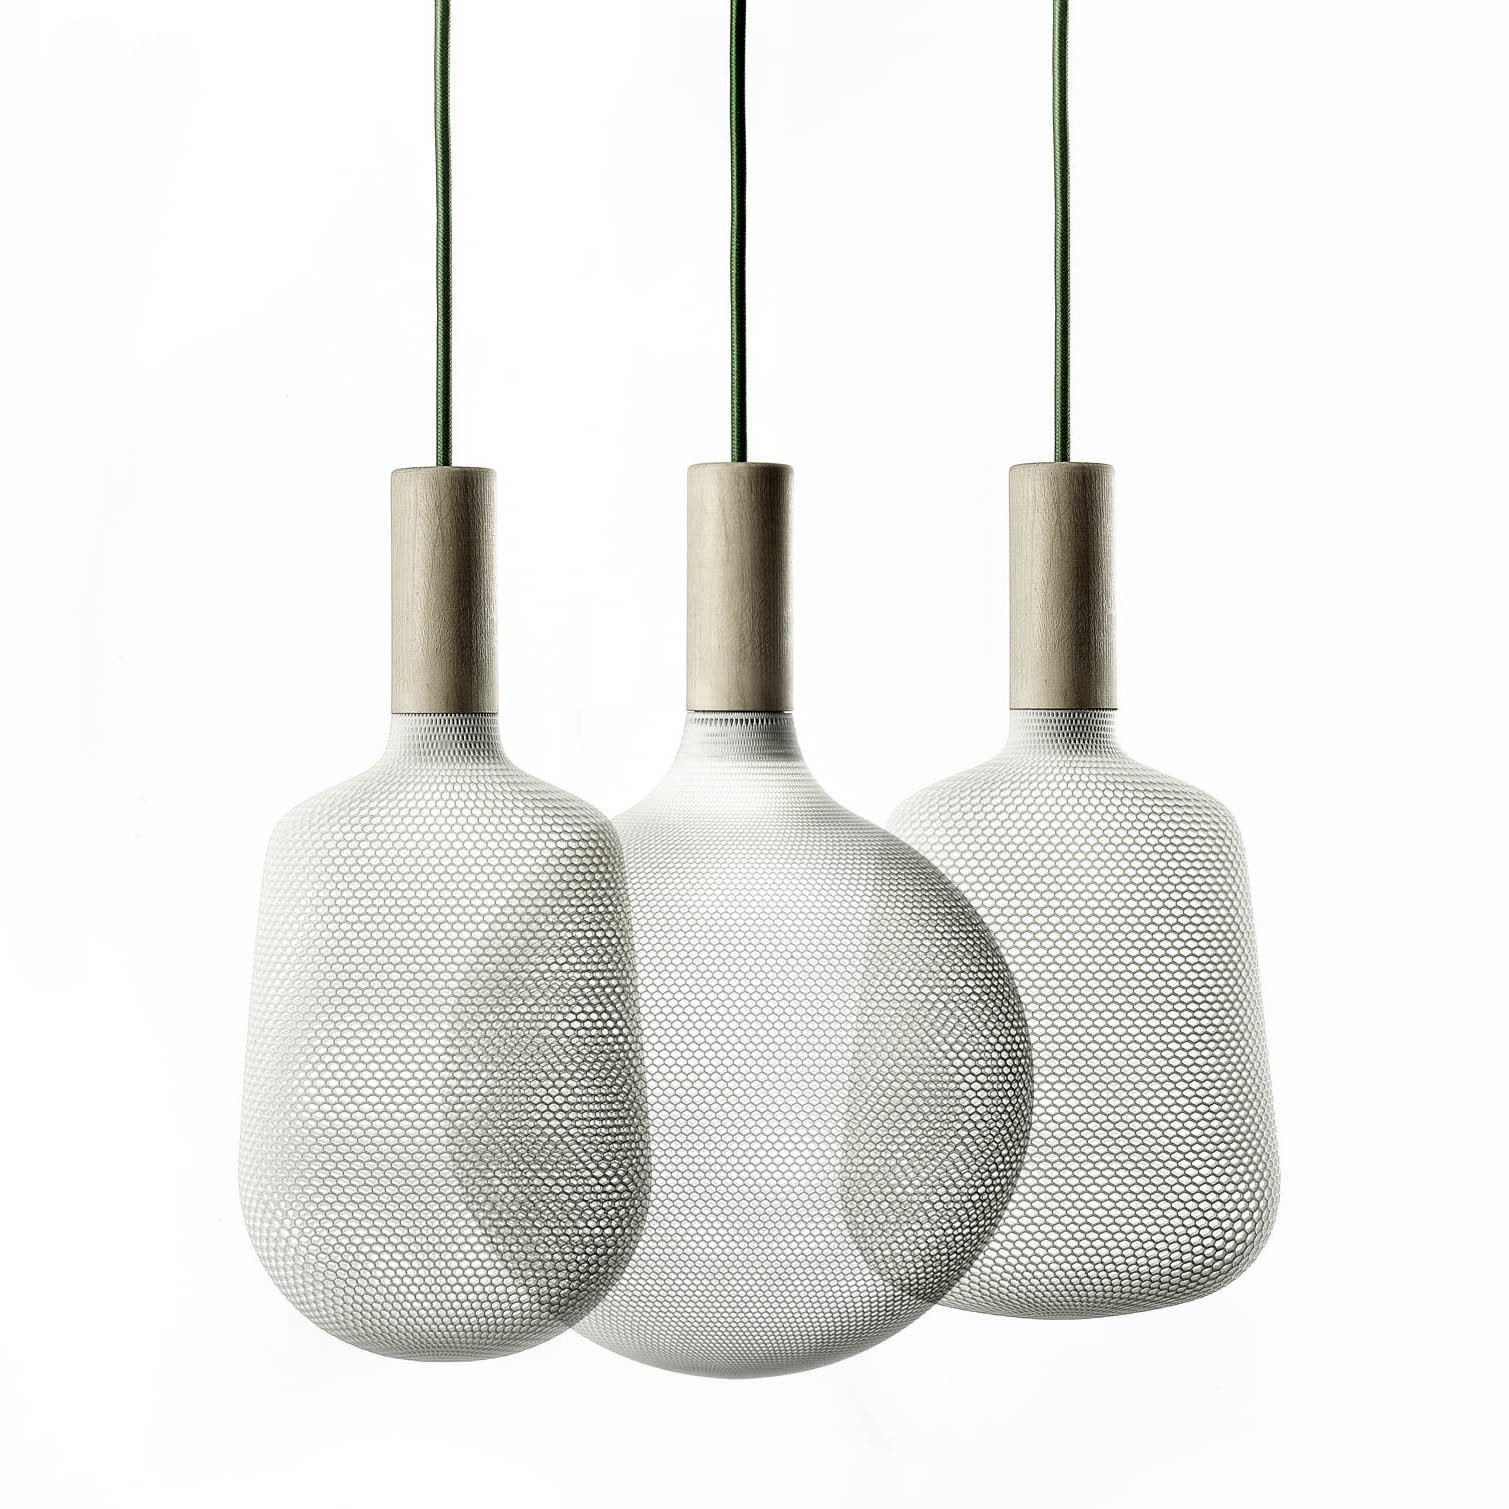 Afillia by Alessandro Zambelli for exnovo.